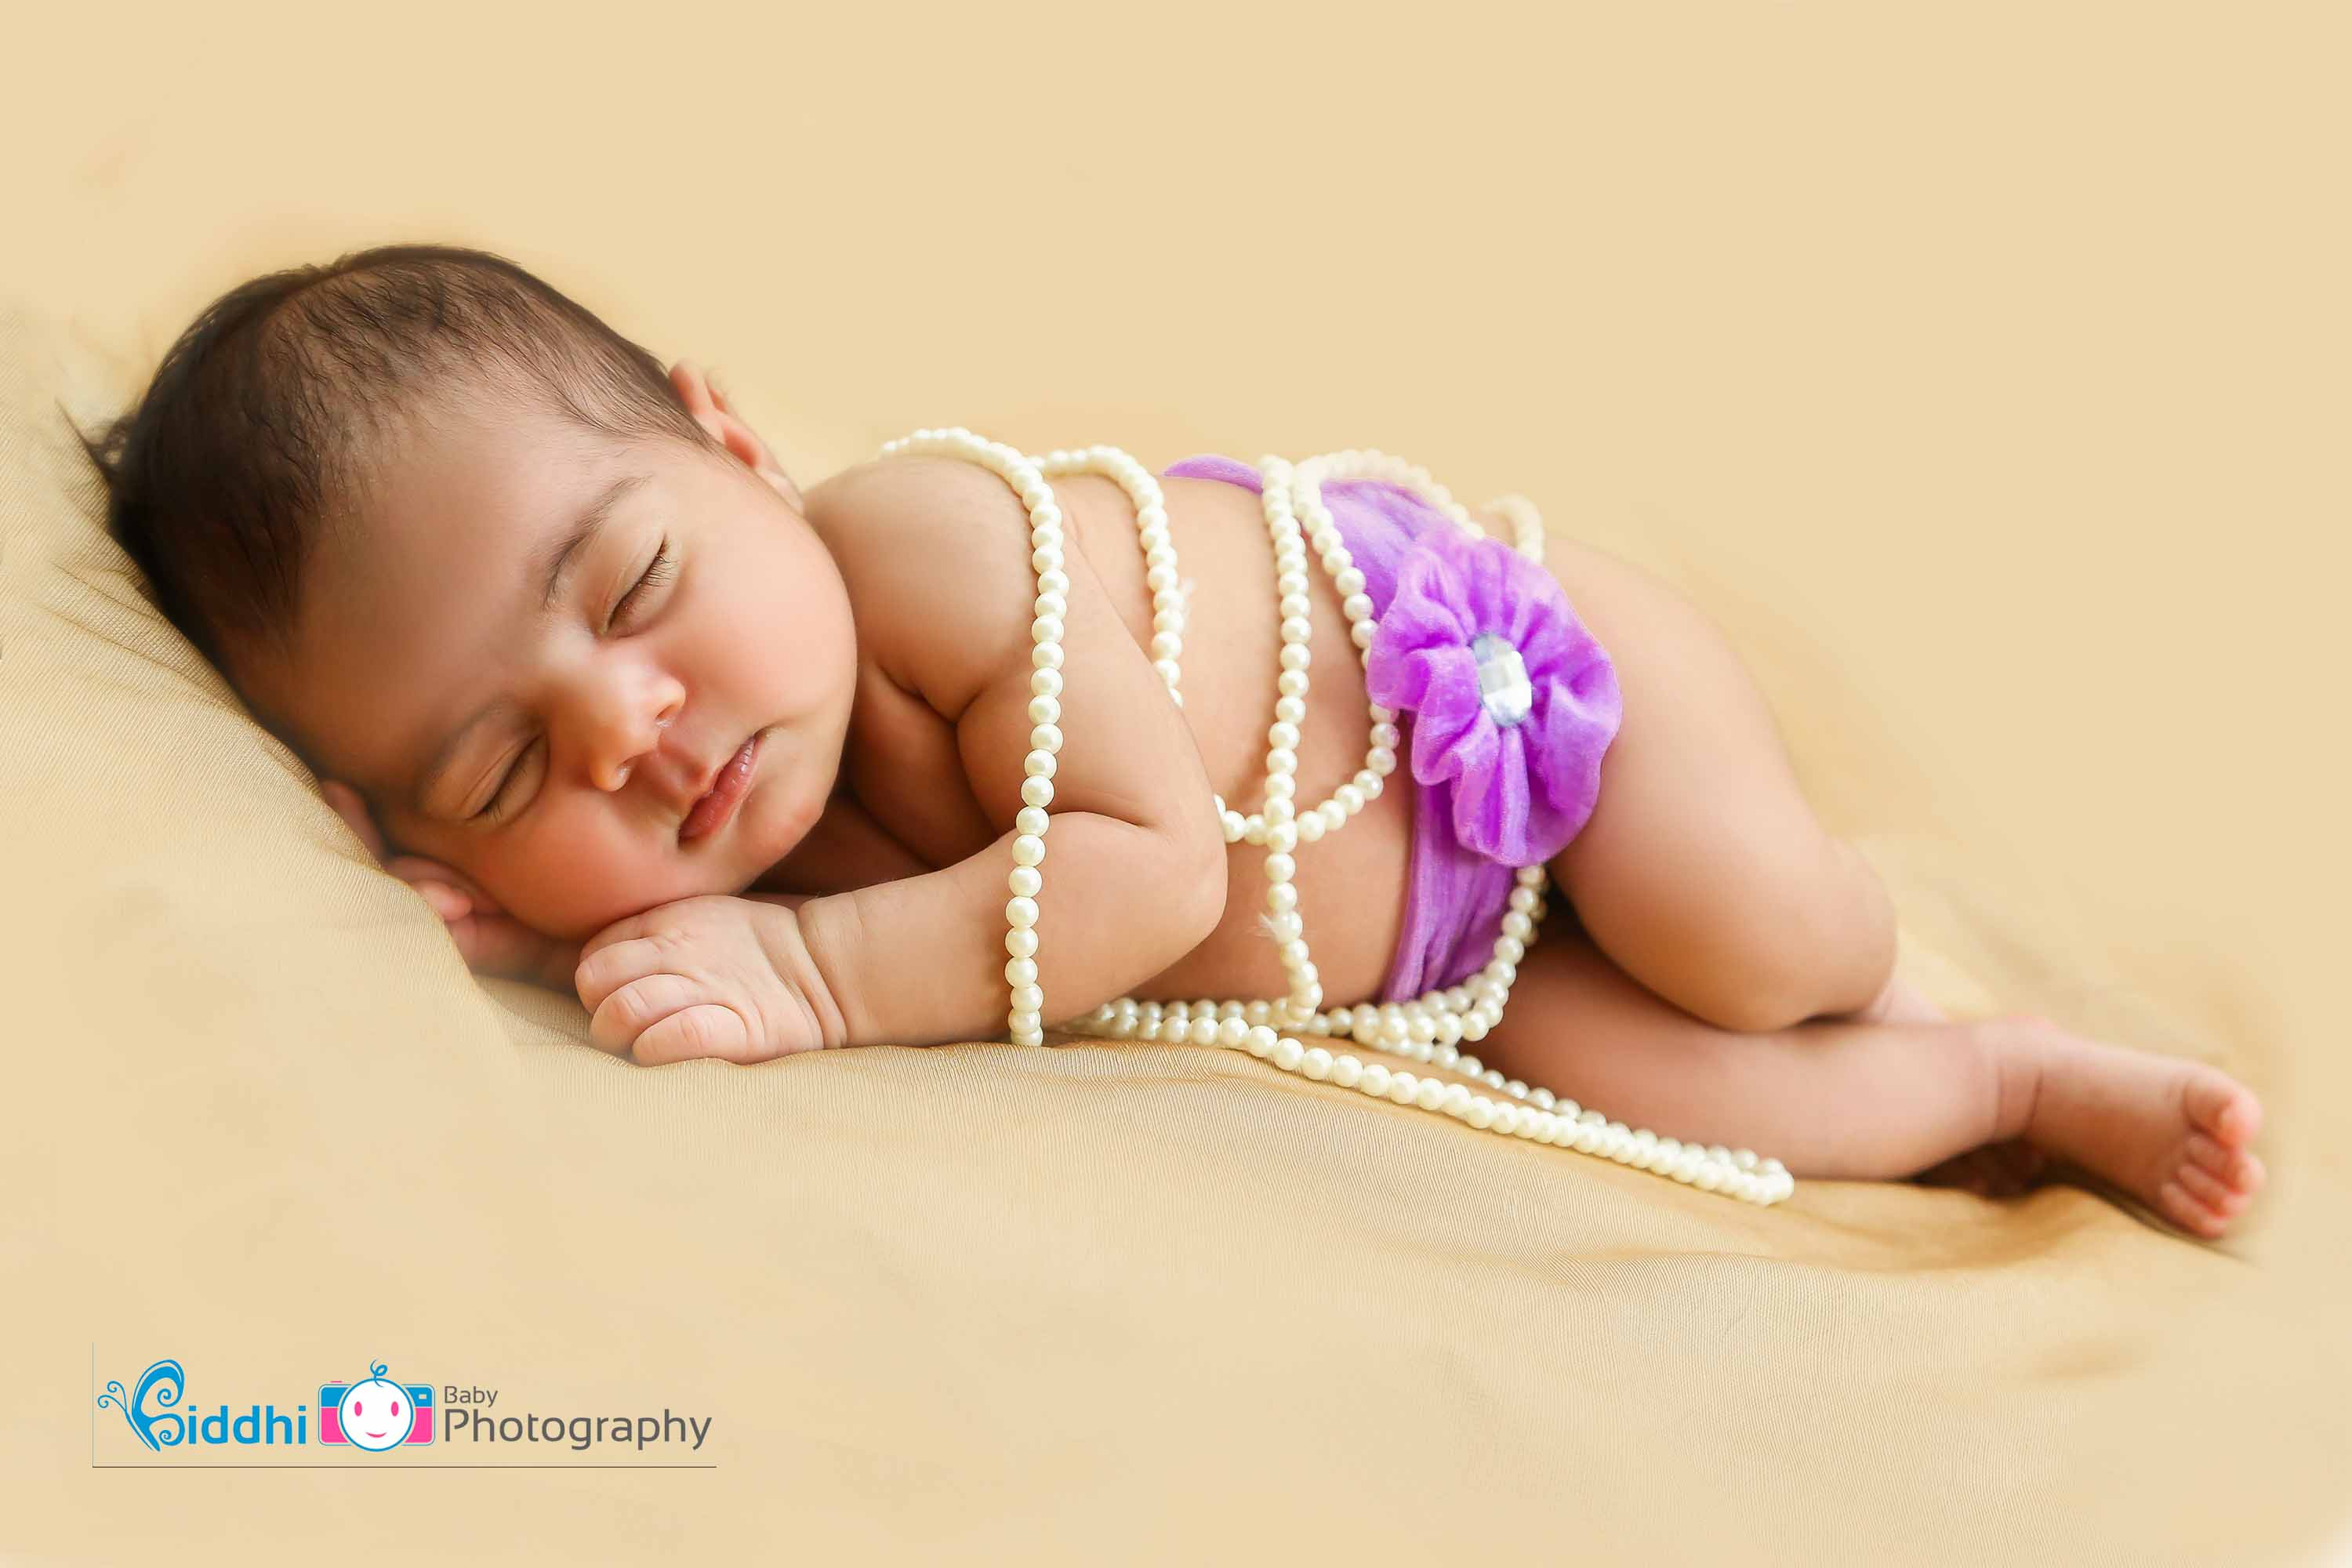 6bb1c18e3 New Born - Siddhi Baby Photography